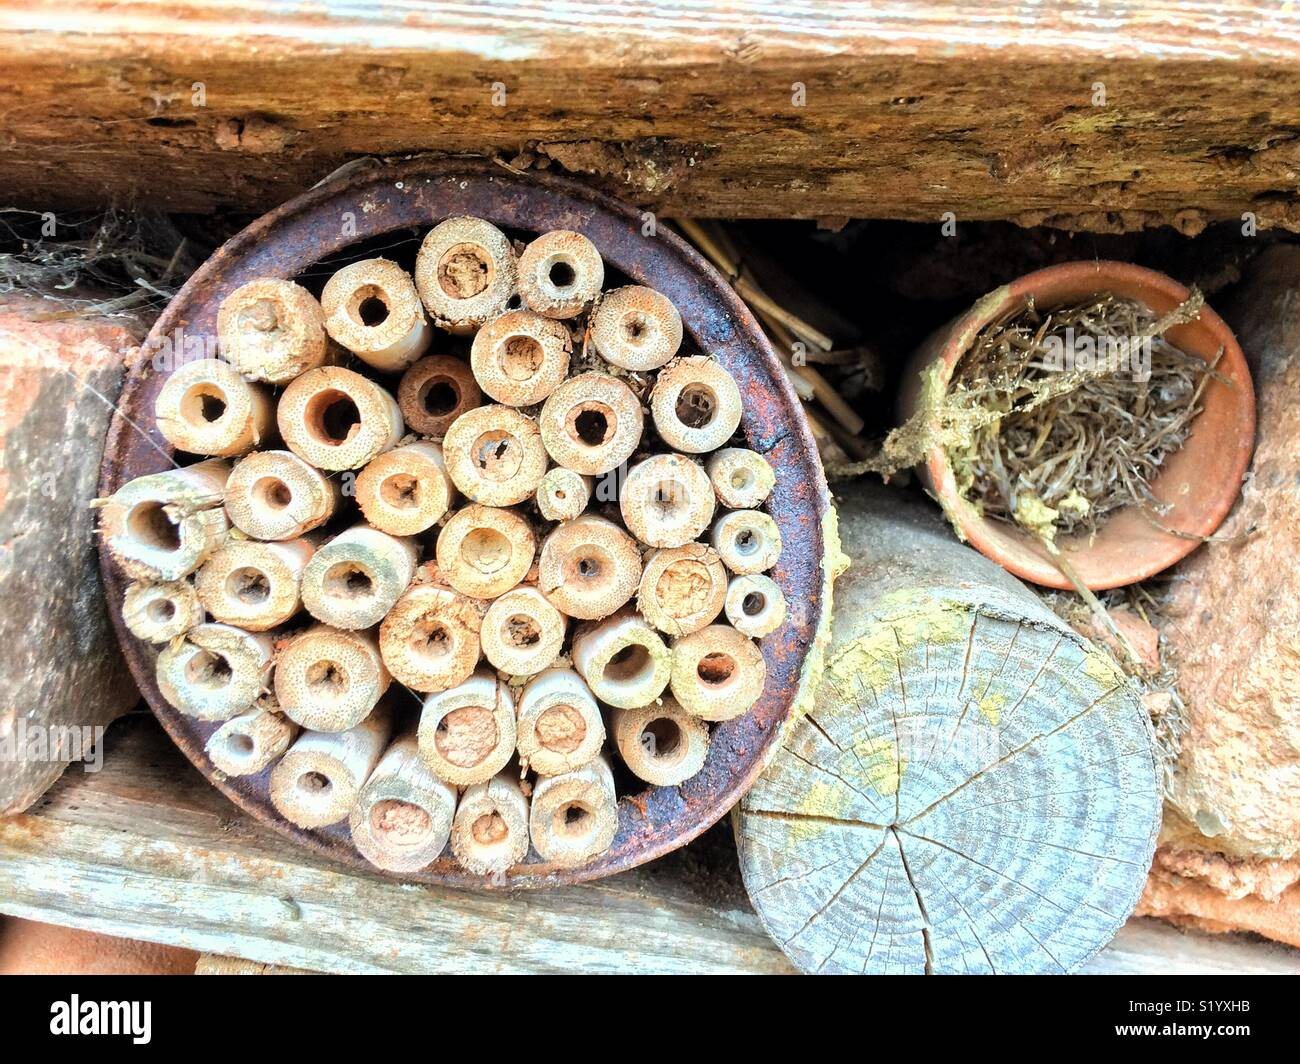 A bug house is used in conservation for creepy crawlies to overwinter and breed in. - Stock Image